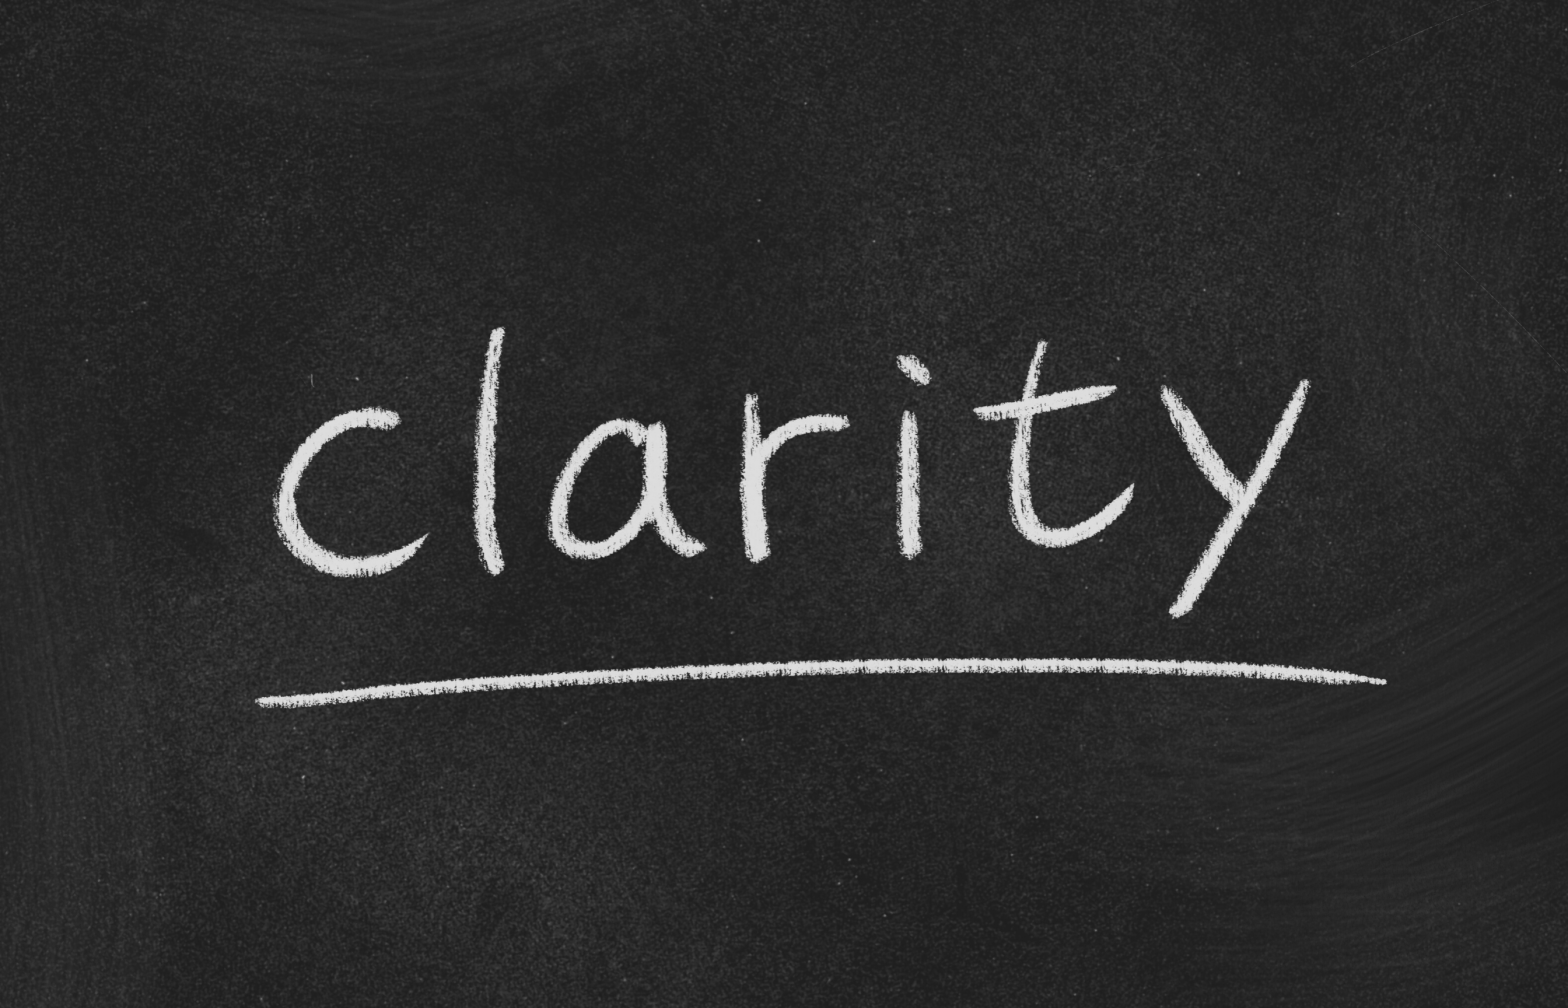 black chalkboard with the word clarity written in the center and underlined.